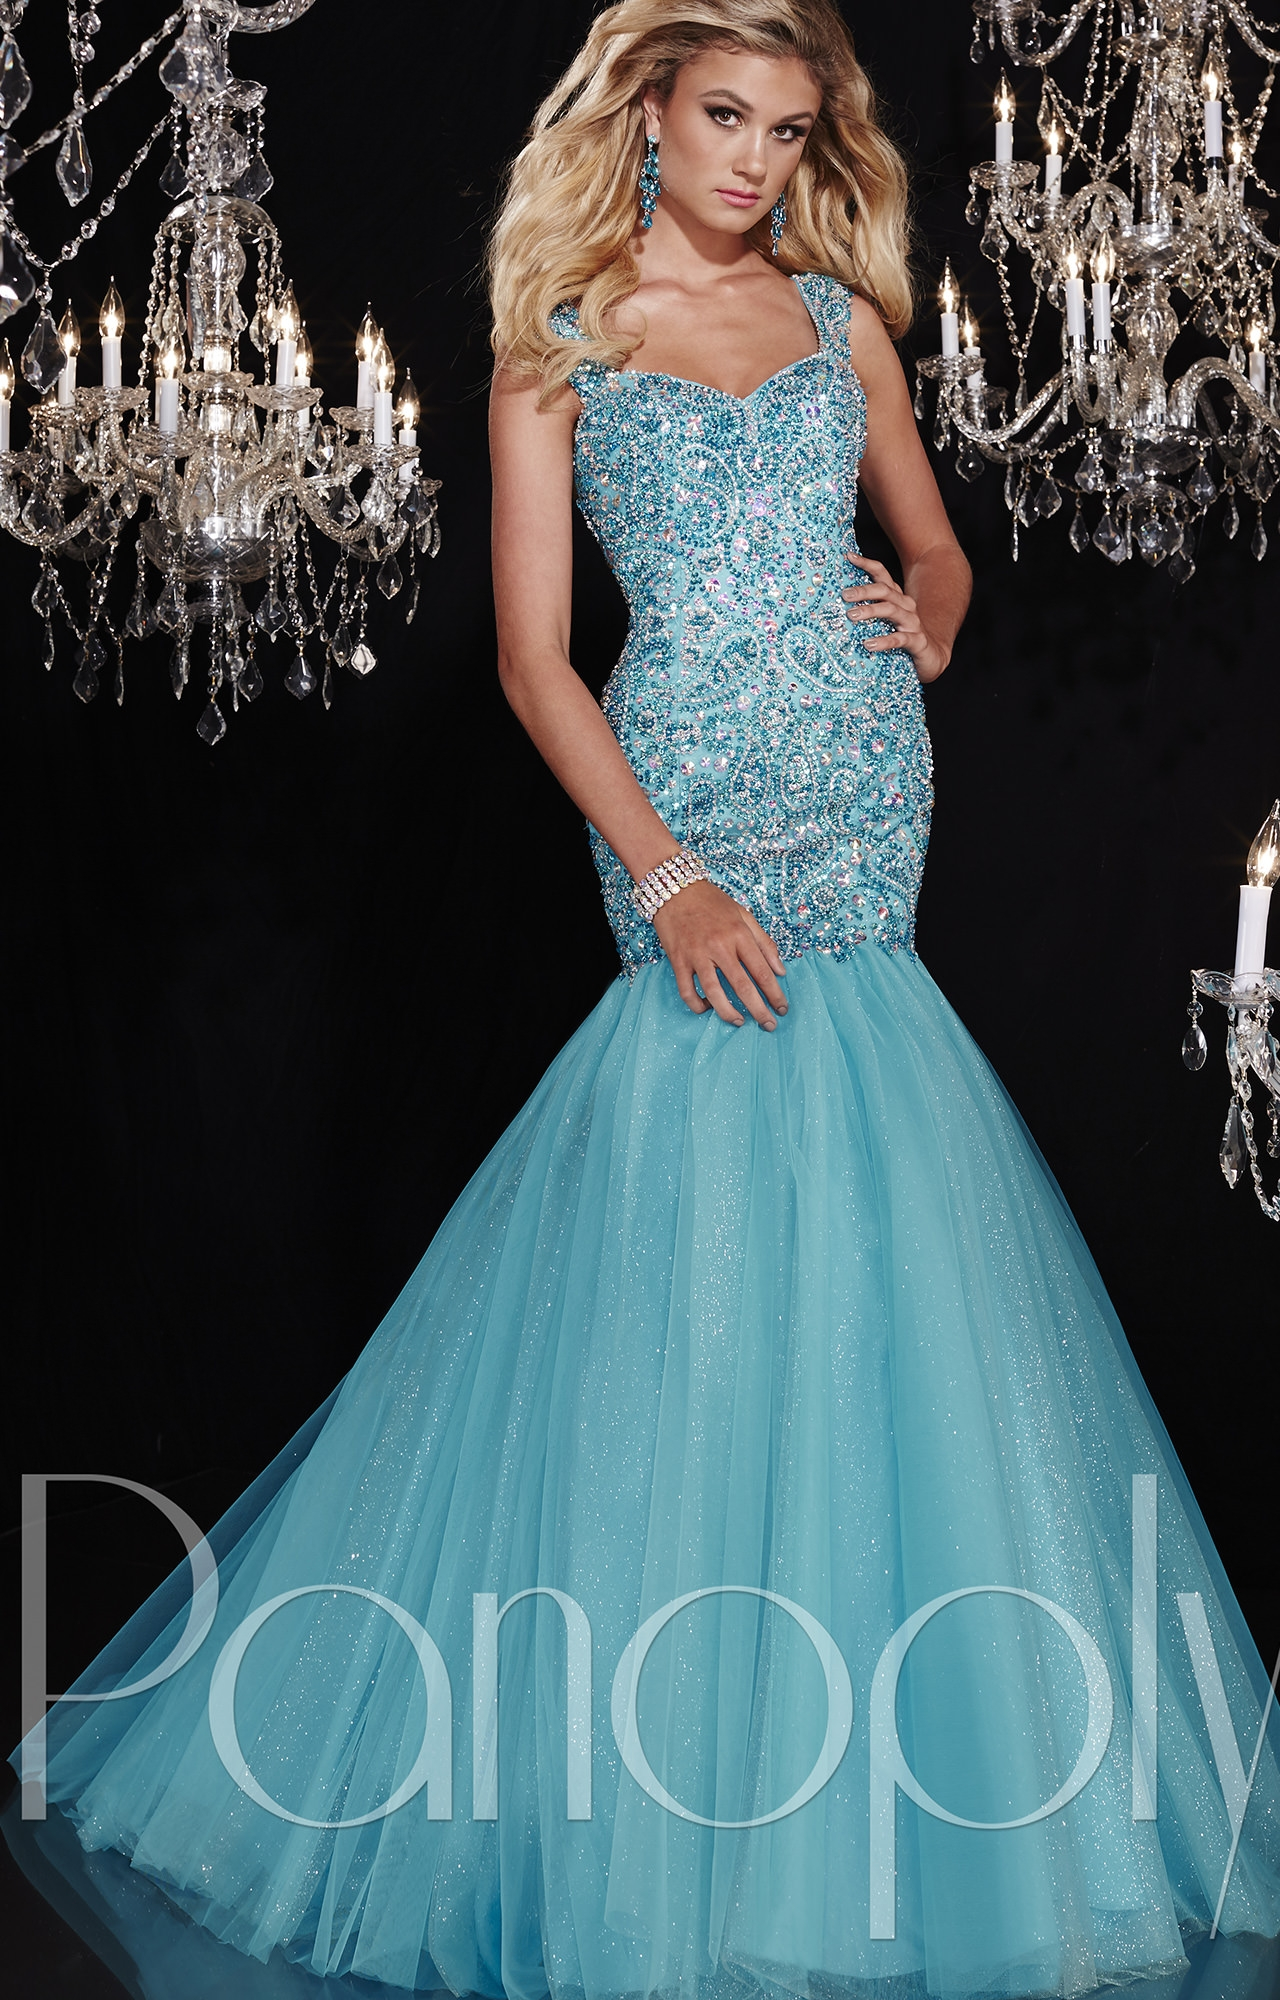 panoply 14787 sweetheart mermaid gown prom dress